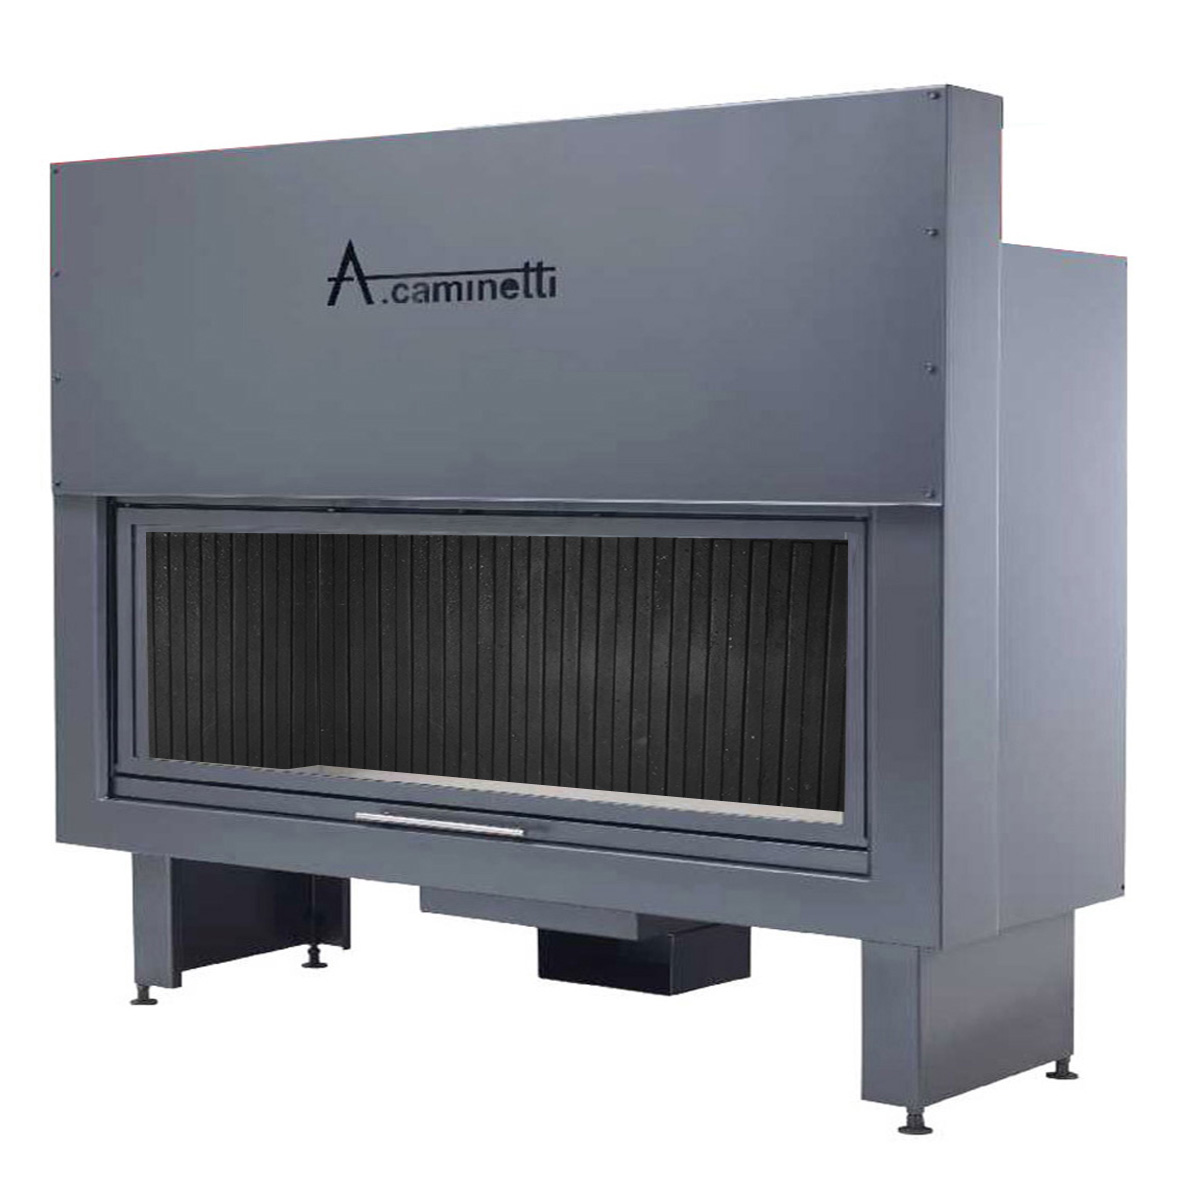 ACAMINETTI Wood Fireplace Horizon 200